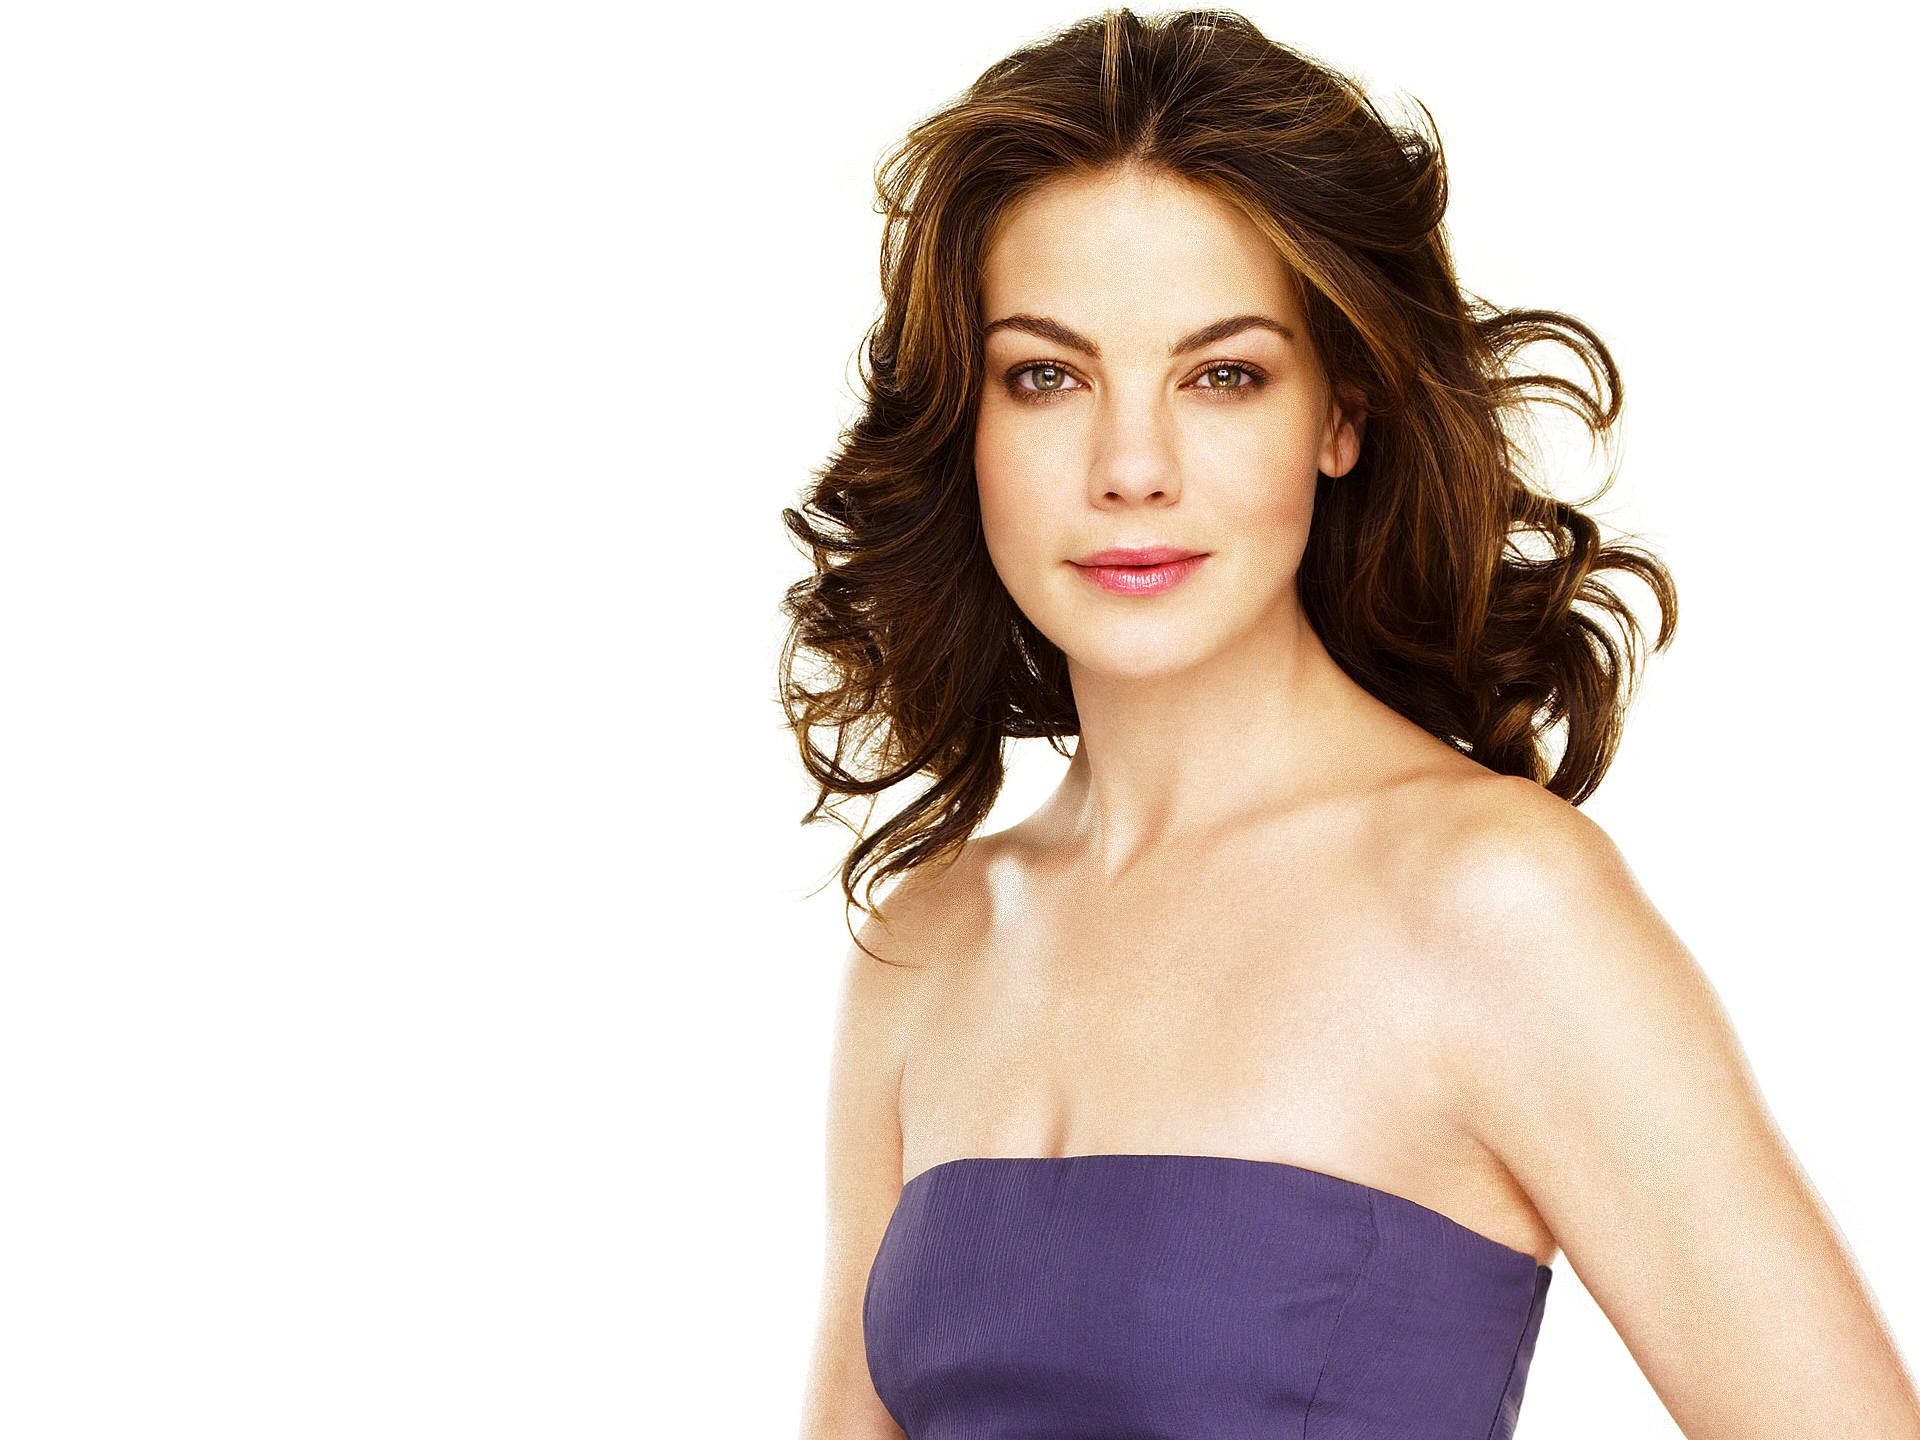 1920x1440 - Michelle Monaghan Wallpapers 16